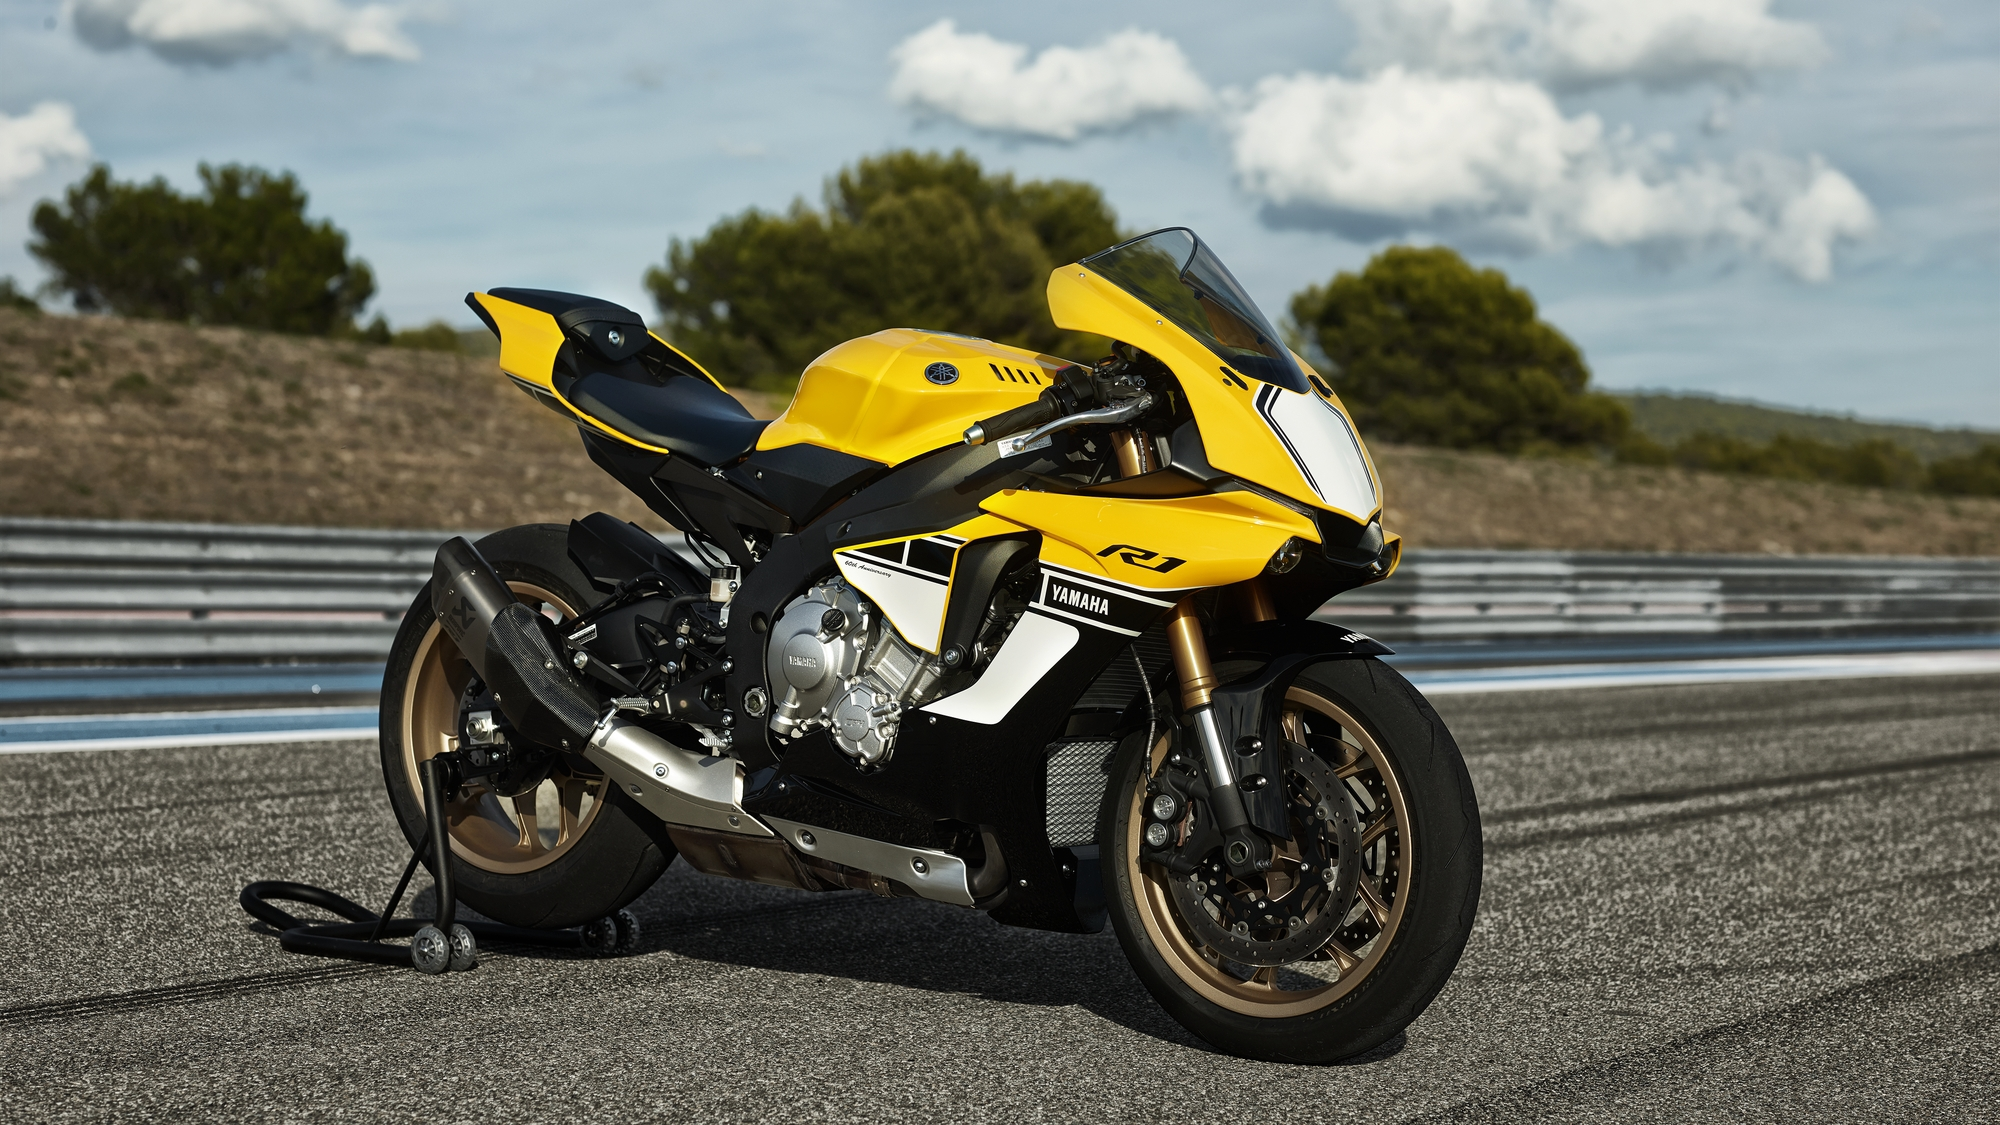 Yamaha Yzf R1 60th Anniversary Edition Shows A Timeless